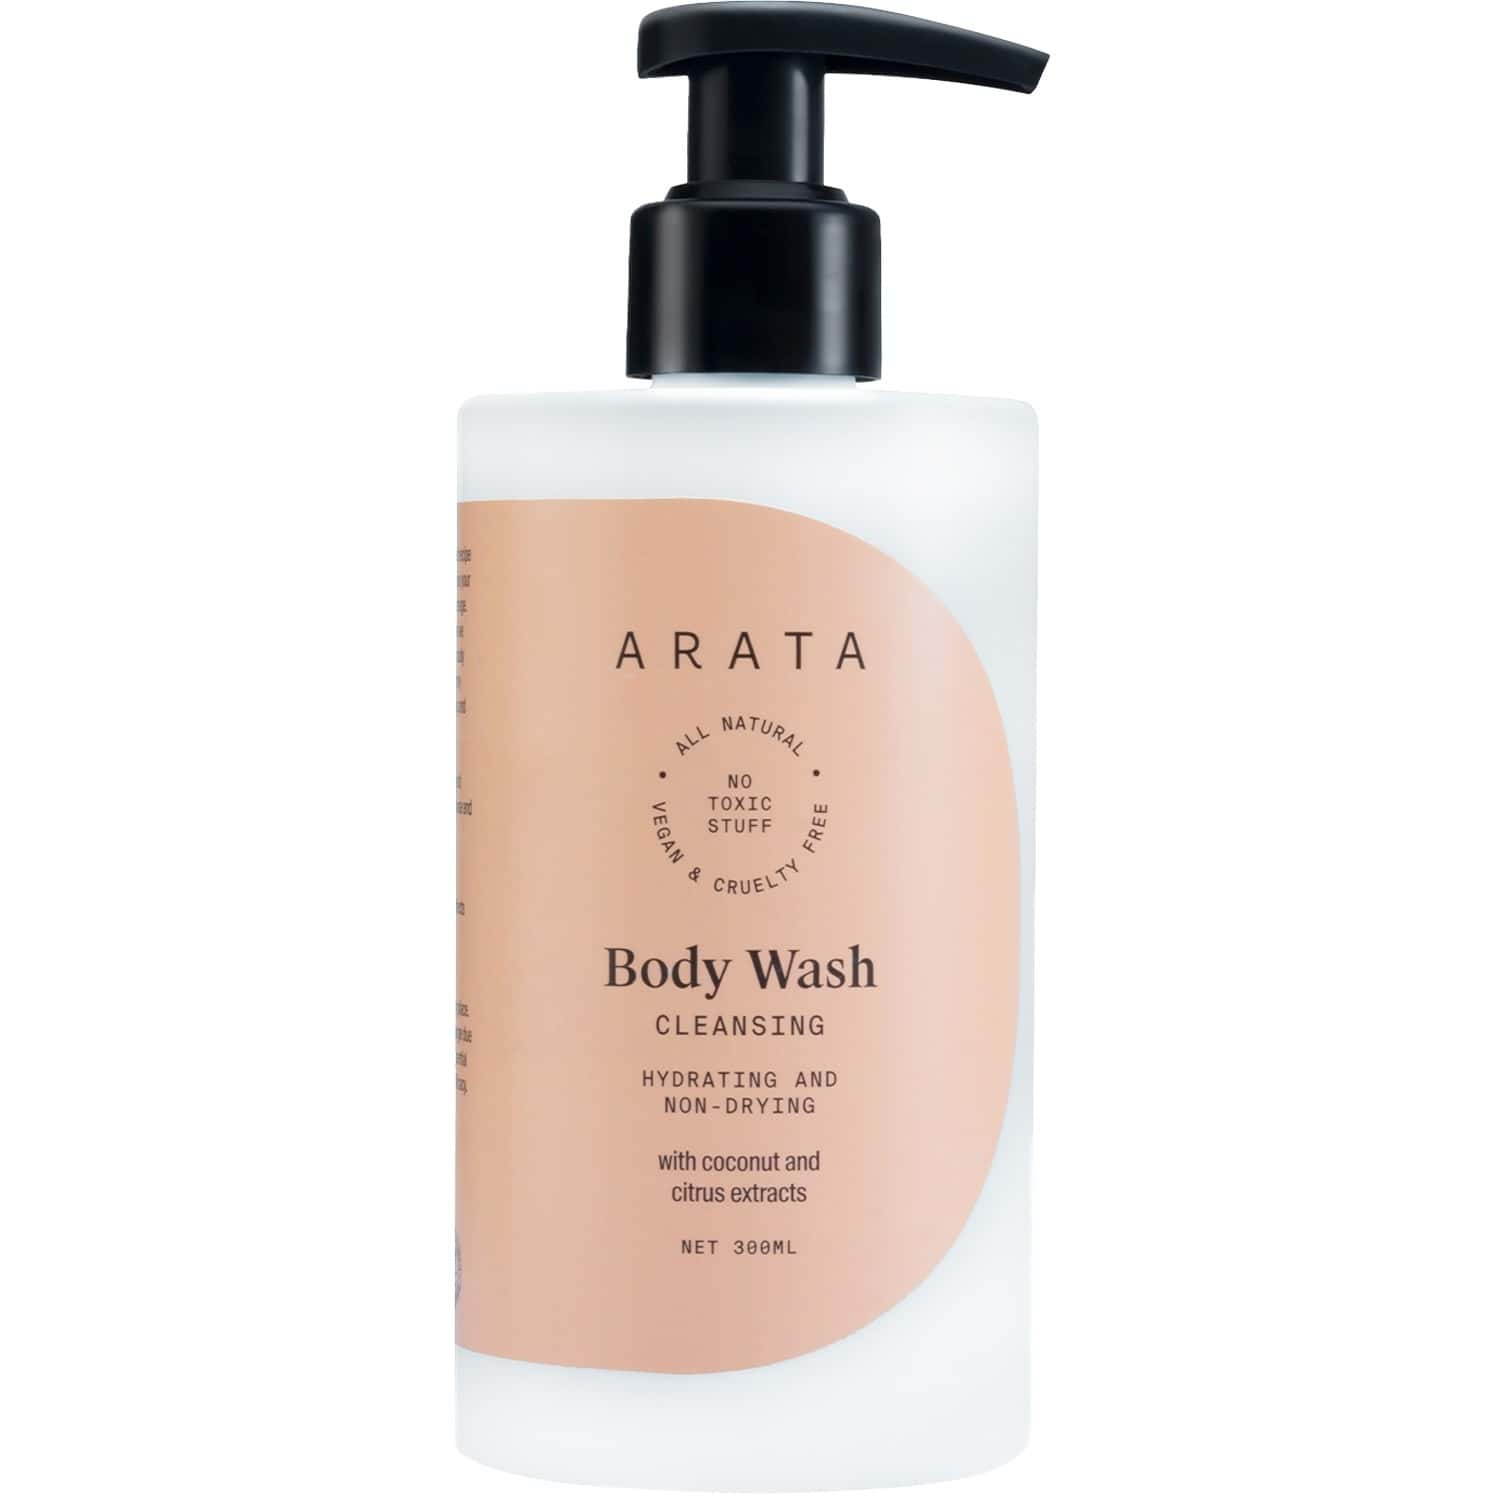 Arata Natural Hydrating & Non-drying Body Wash With Coconut & Citrus Extracts || All-natural, Vegan & Cruelty-free || Gentle Daily Cleansing For Women & Men - (300 Ml)